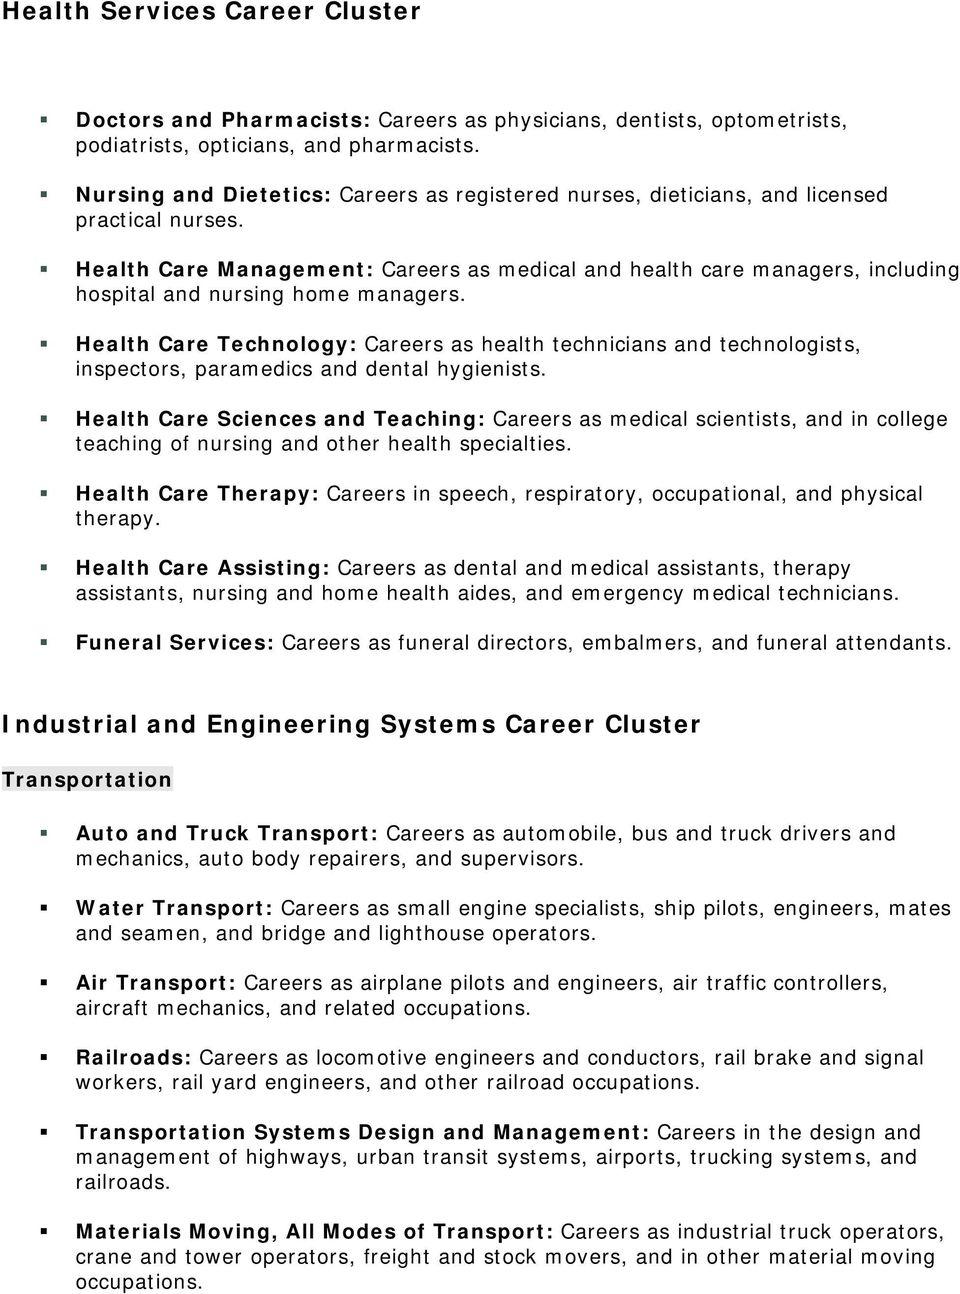 Health Care Management: Careers as medical and health care managers, including hospital and nursing home managers.